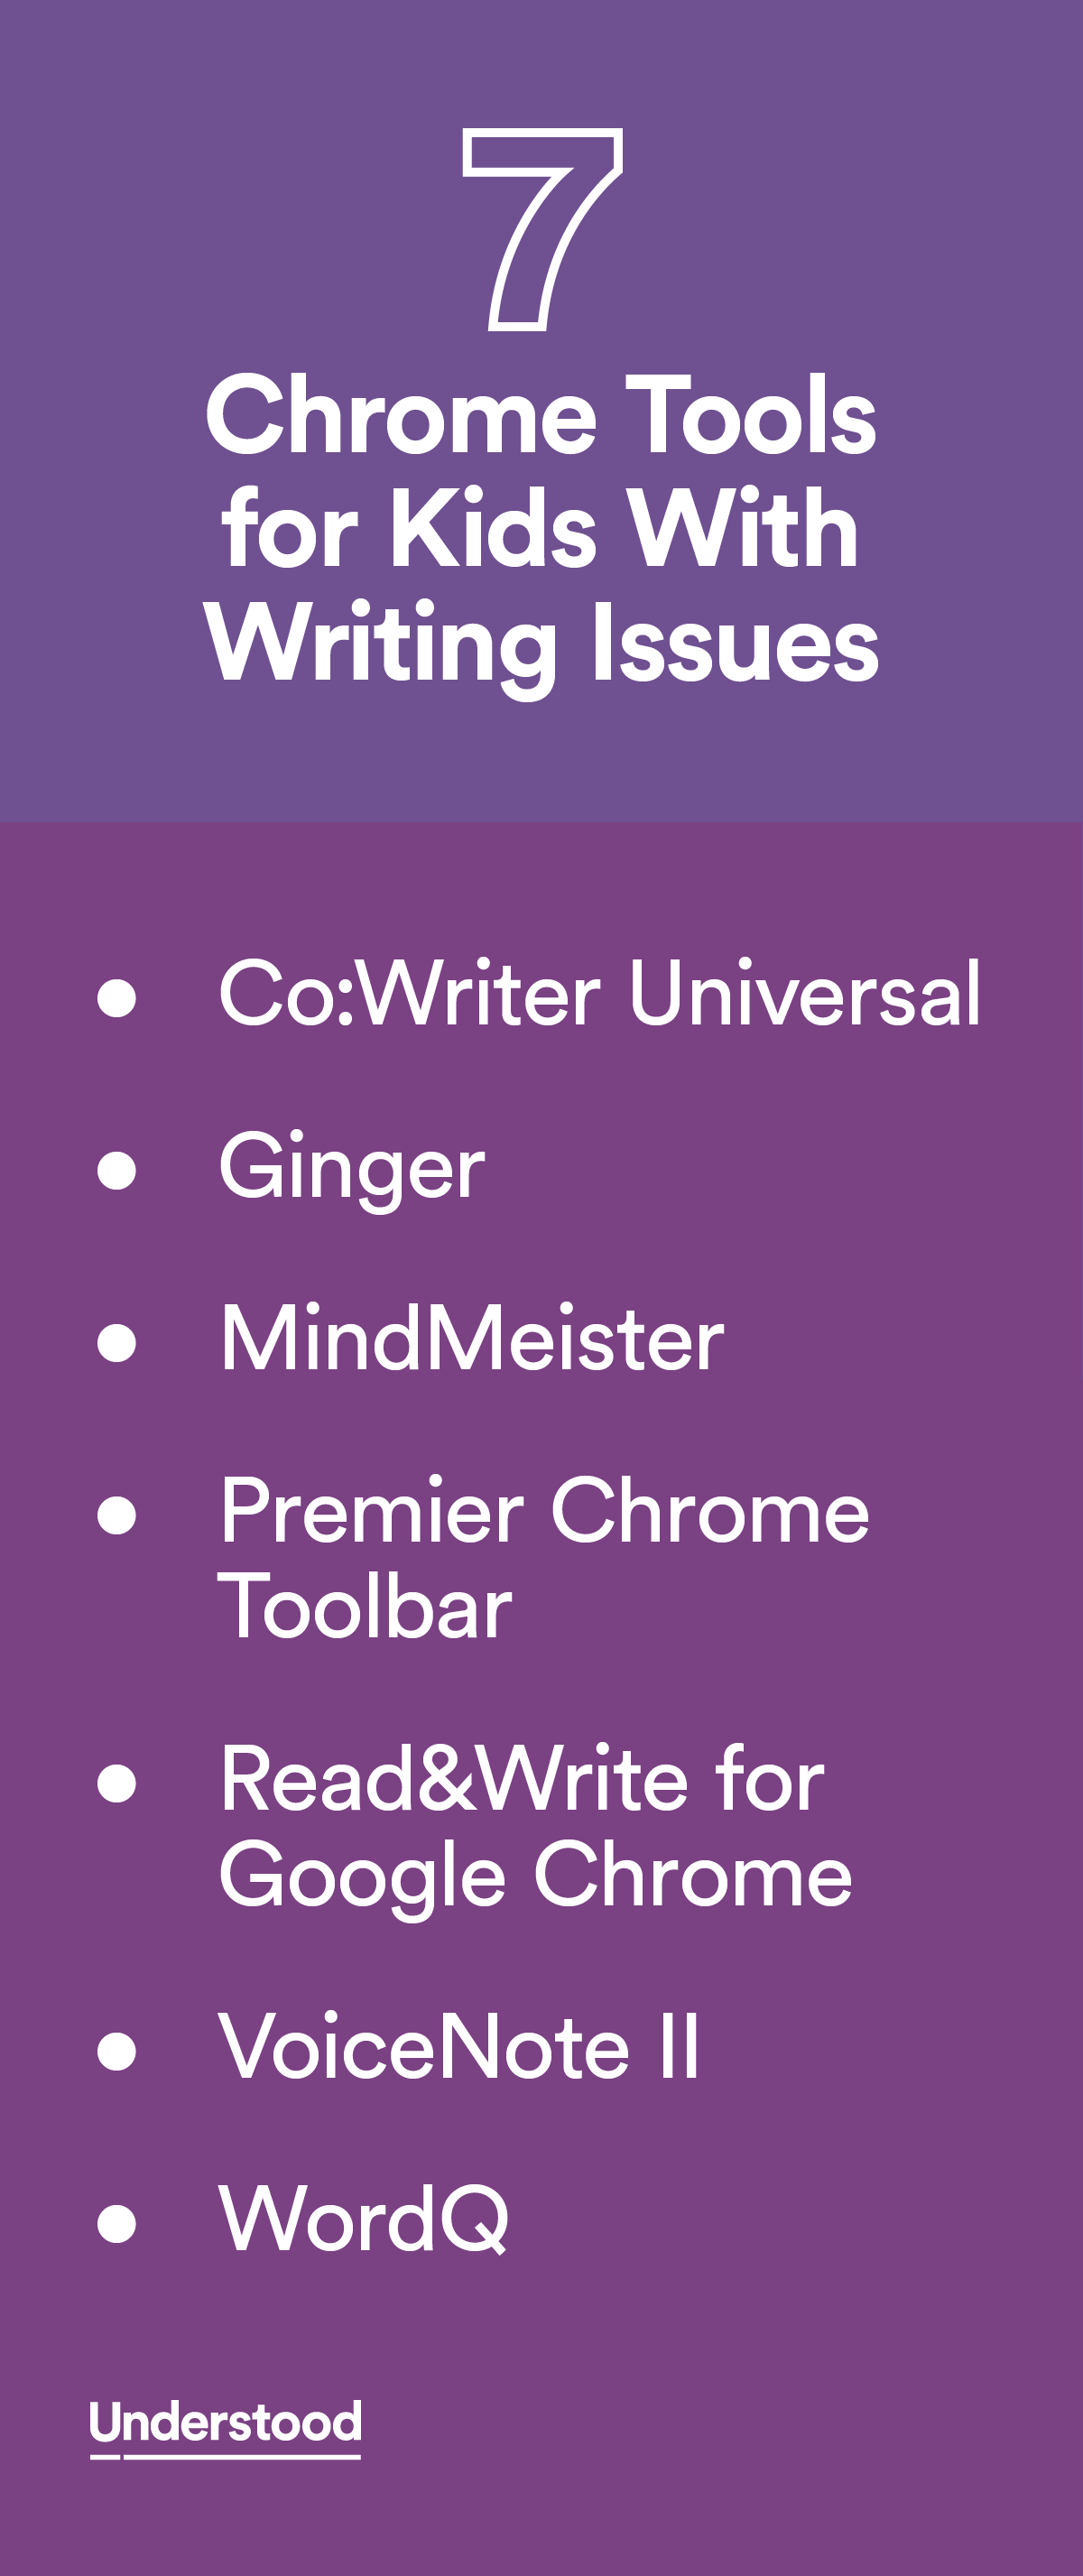 7 Chrome Tools for Kids With Writing Issues